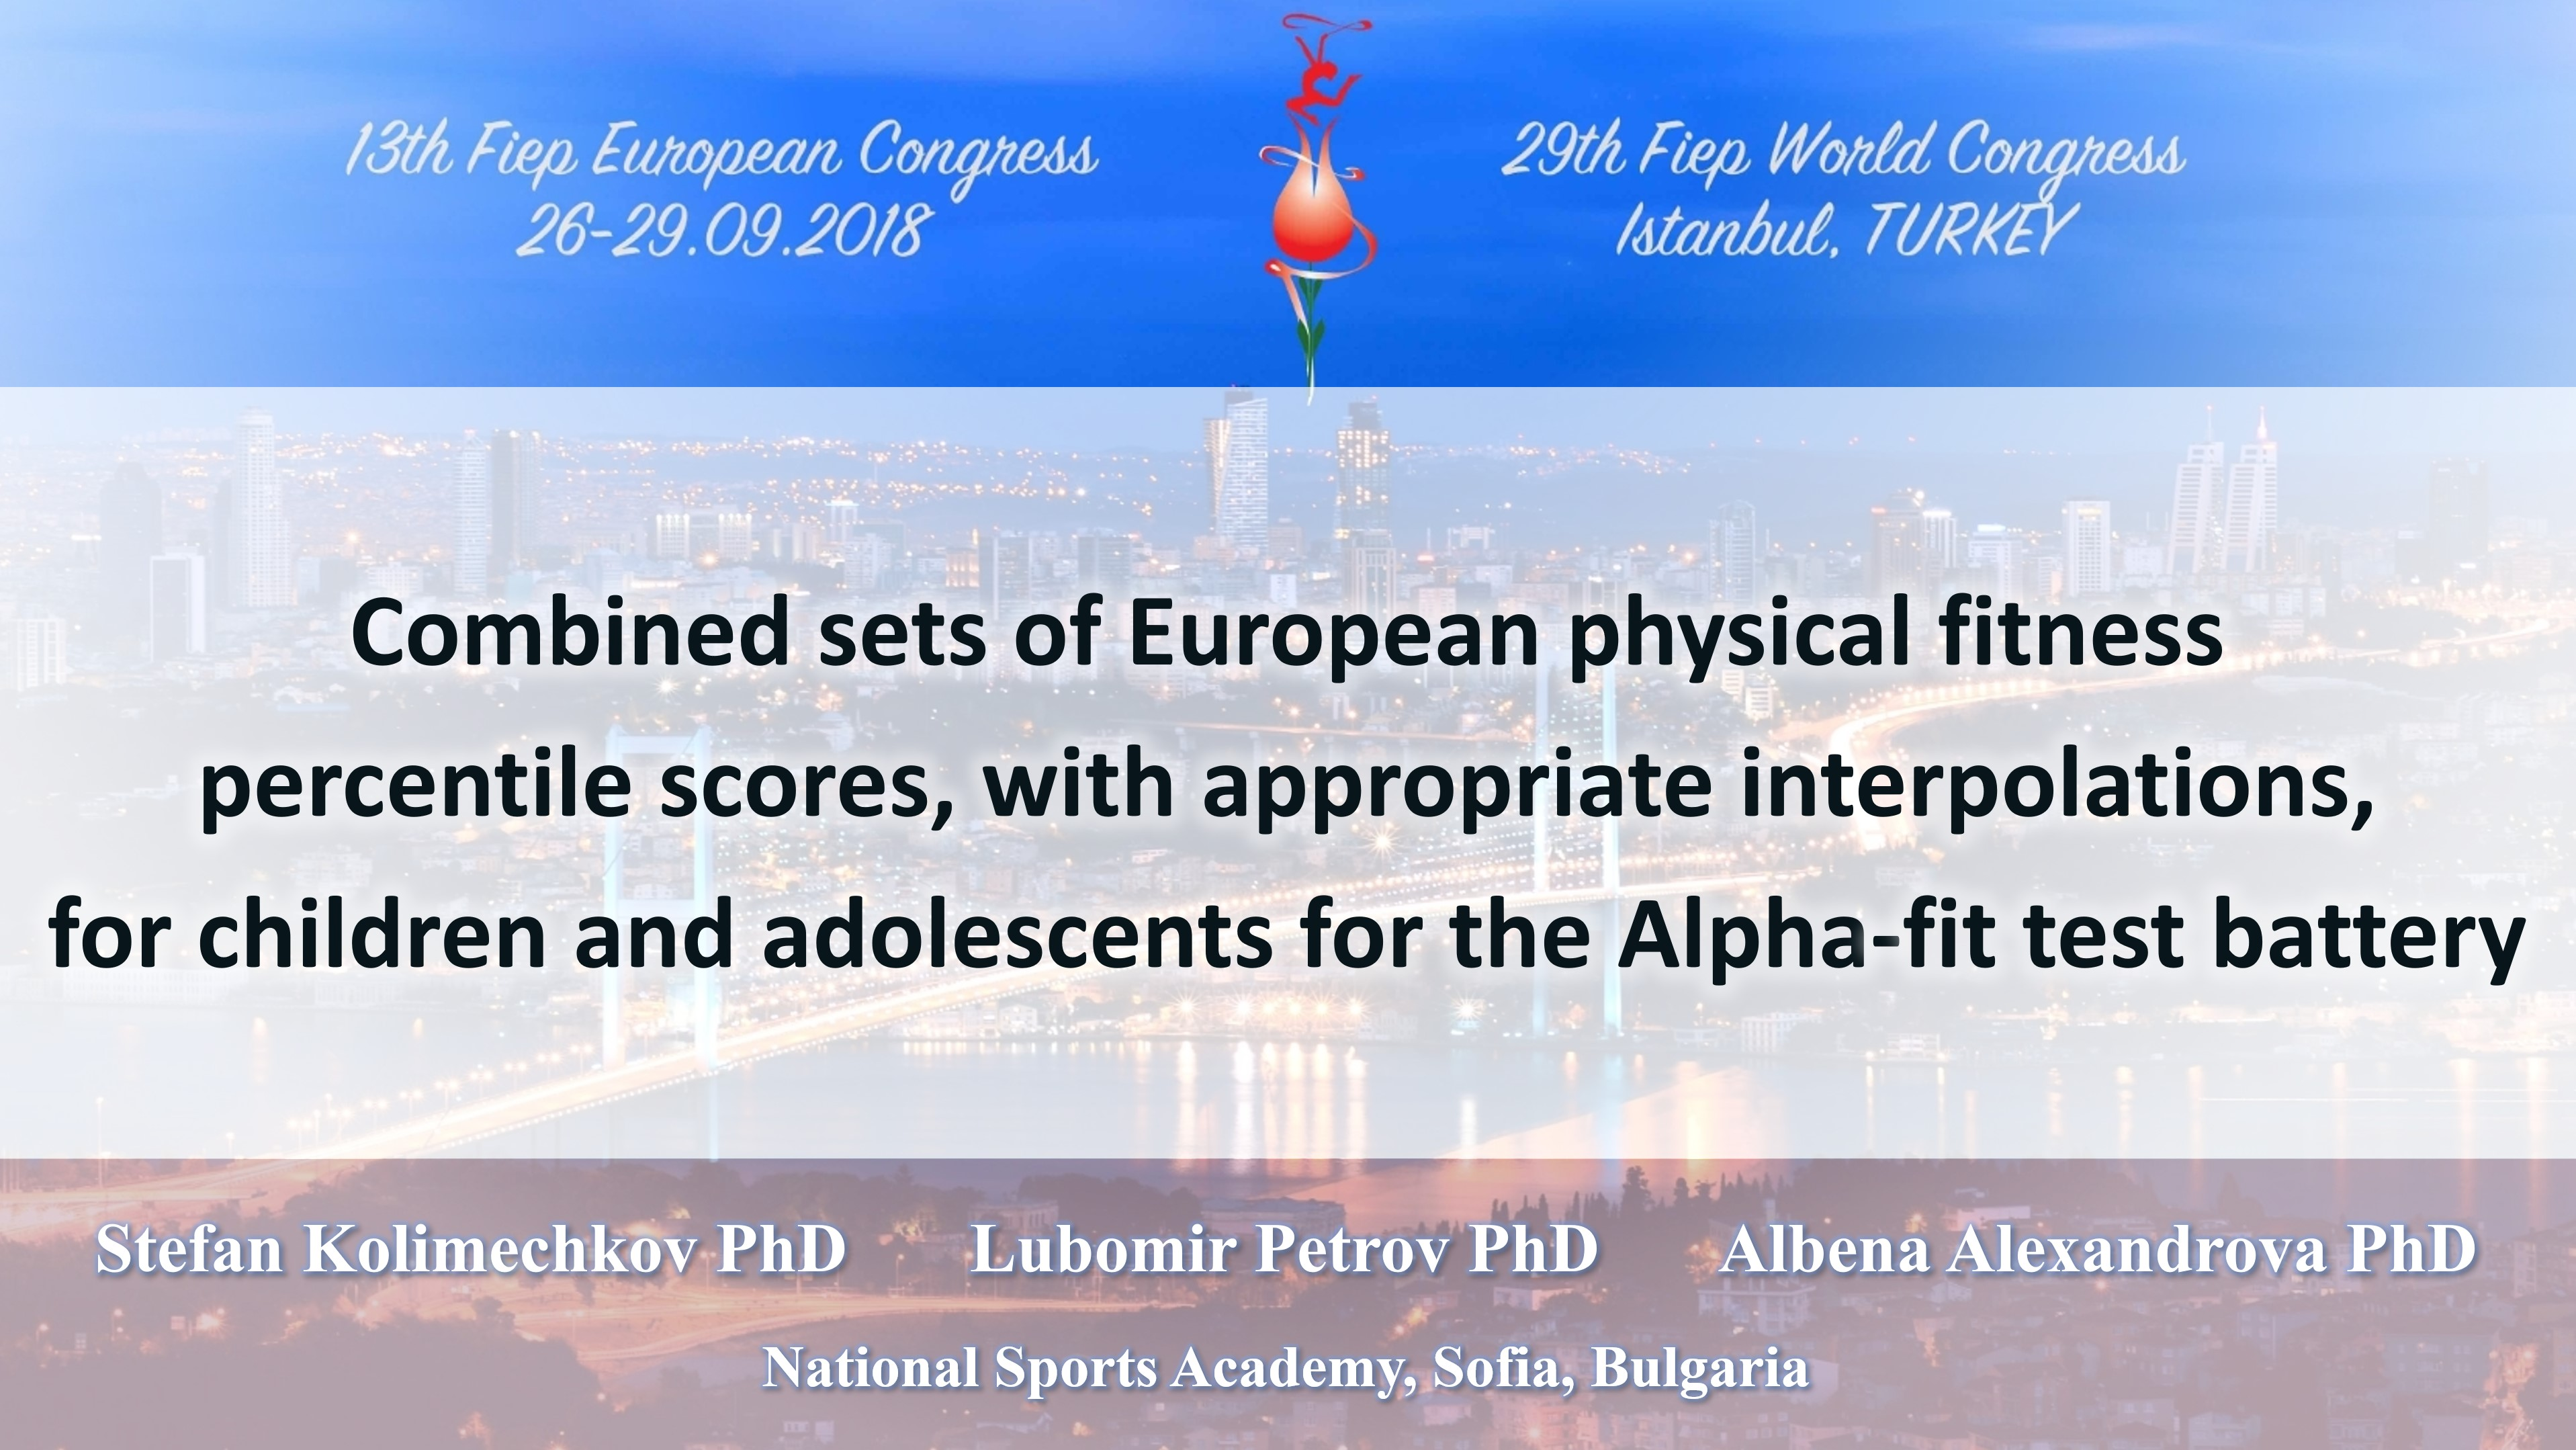 Combined sets of European physical fitness percentile scores for the Alpha-fit test battery